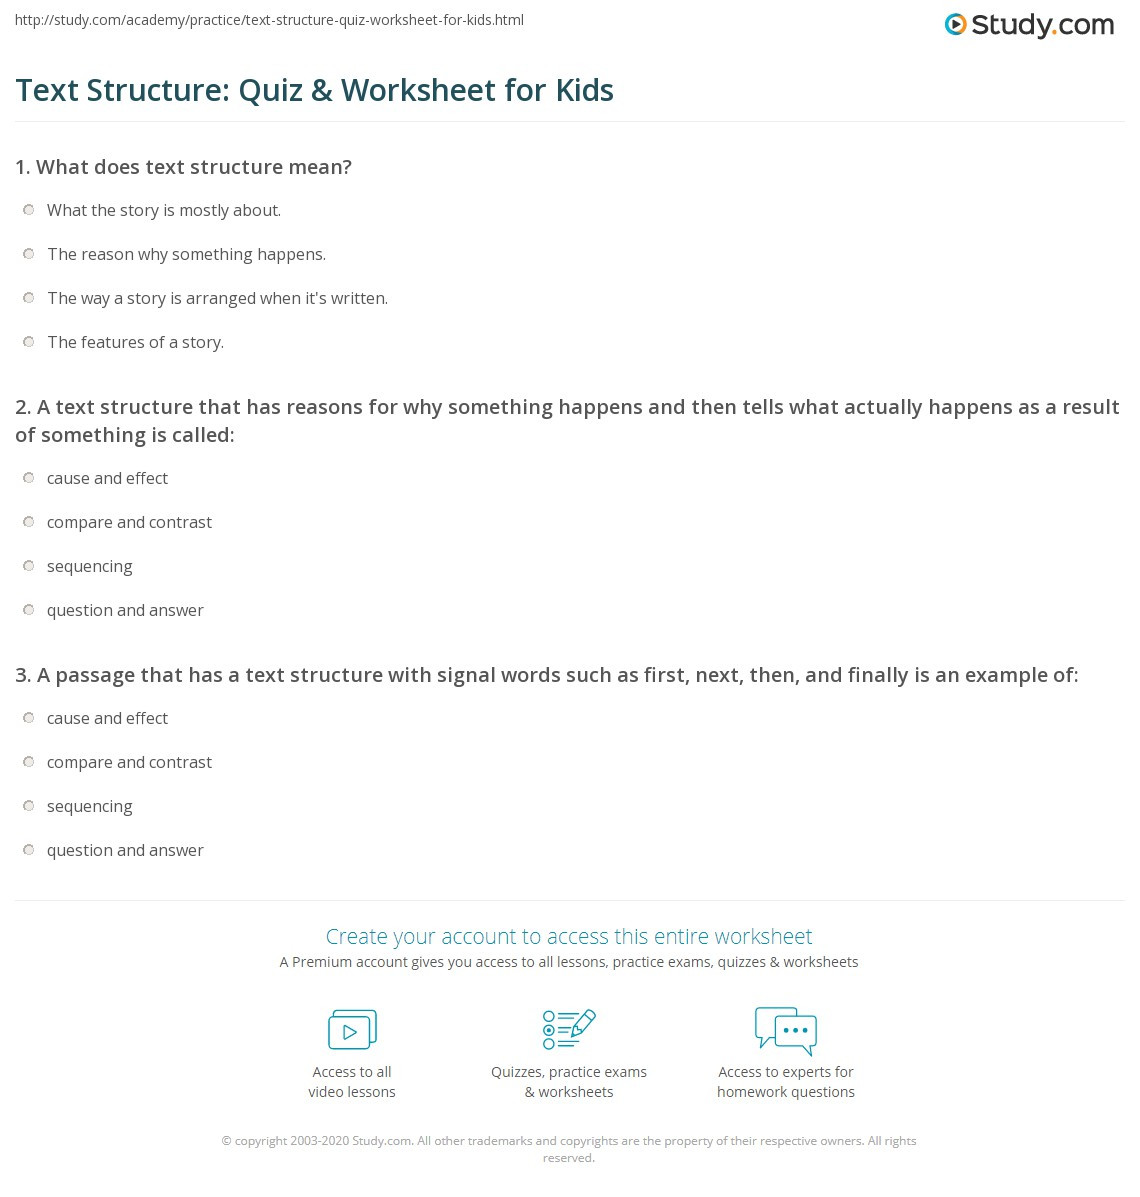 Text Structure 3rd Grade Worksheets Text Structure Quiz & Worksheet for Kids